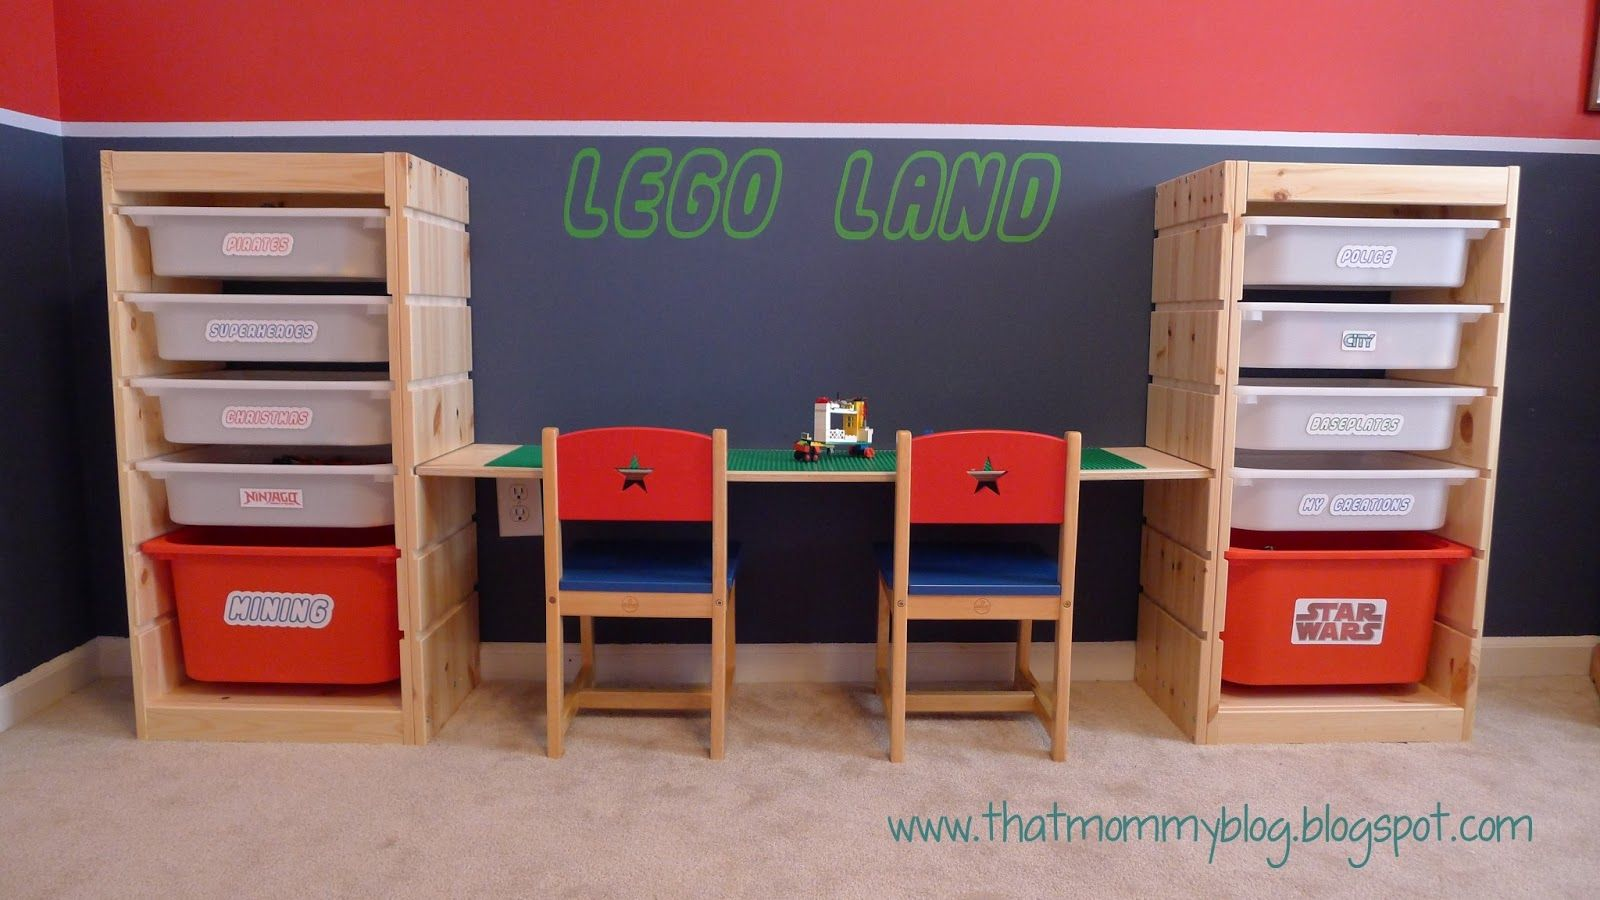 Lego ikea hack Materials Trofast Wood Shelf Hex ScrewsDescription My Adjustable Height Lego Play Table and Storage Unit combines the Lego storage ideas ... & That Mommy Blog: Lego Storage and Play Table: An Easy IKEA Hack ...